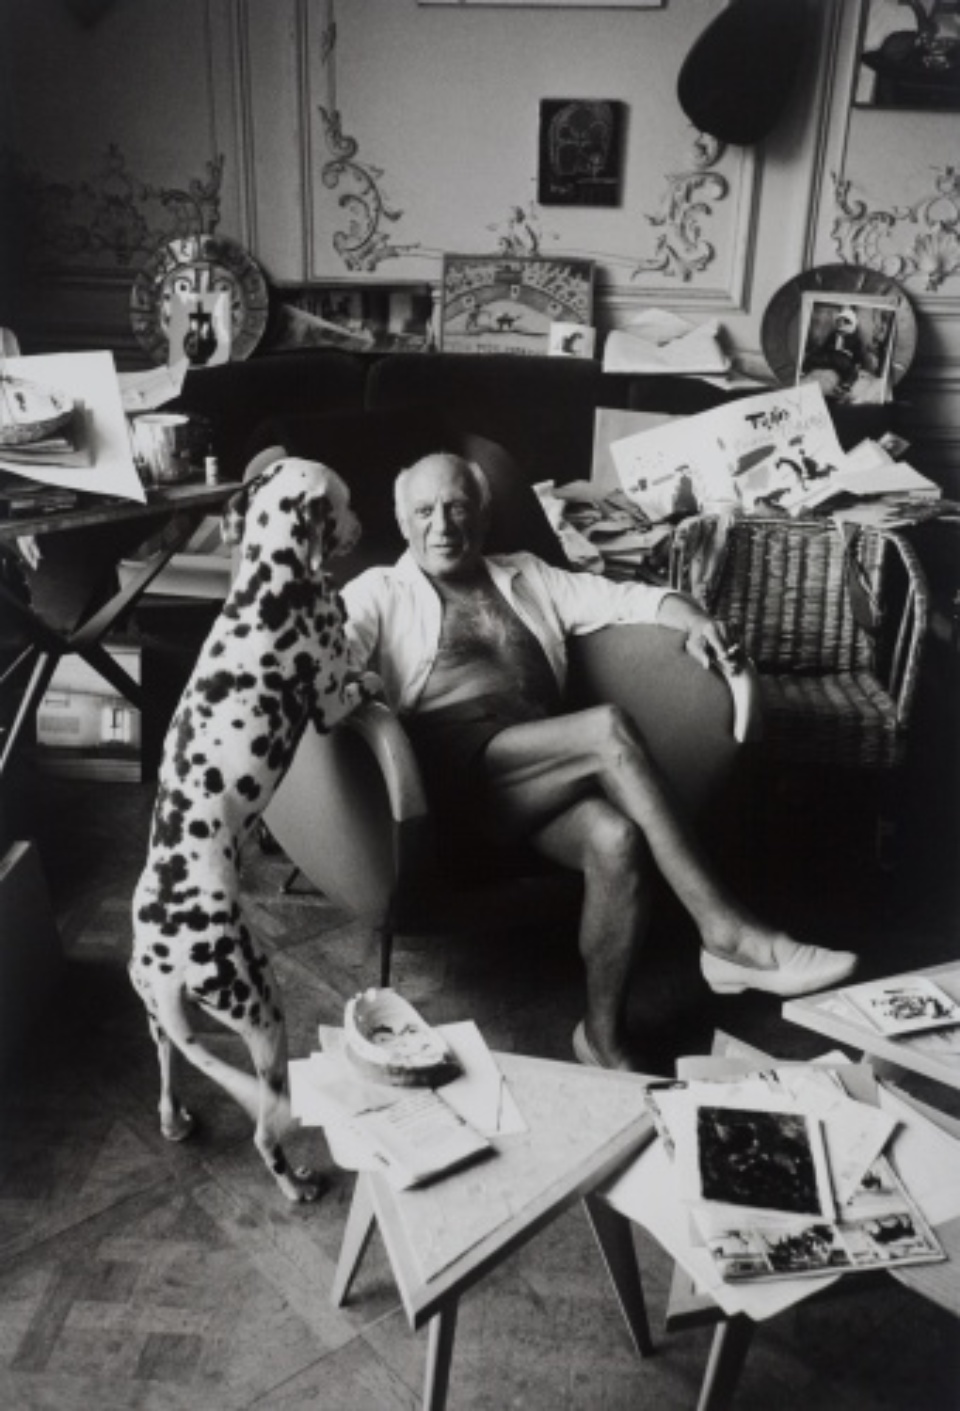 Edward Quinn: Untitled (Picasso in Chair with Dalmation) 1952 Gelatin silver print, printed later Estate stamp, signed by Gret Quinn 50 x 40 cm